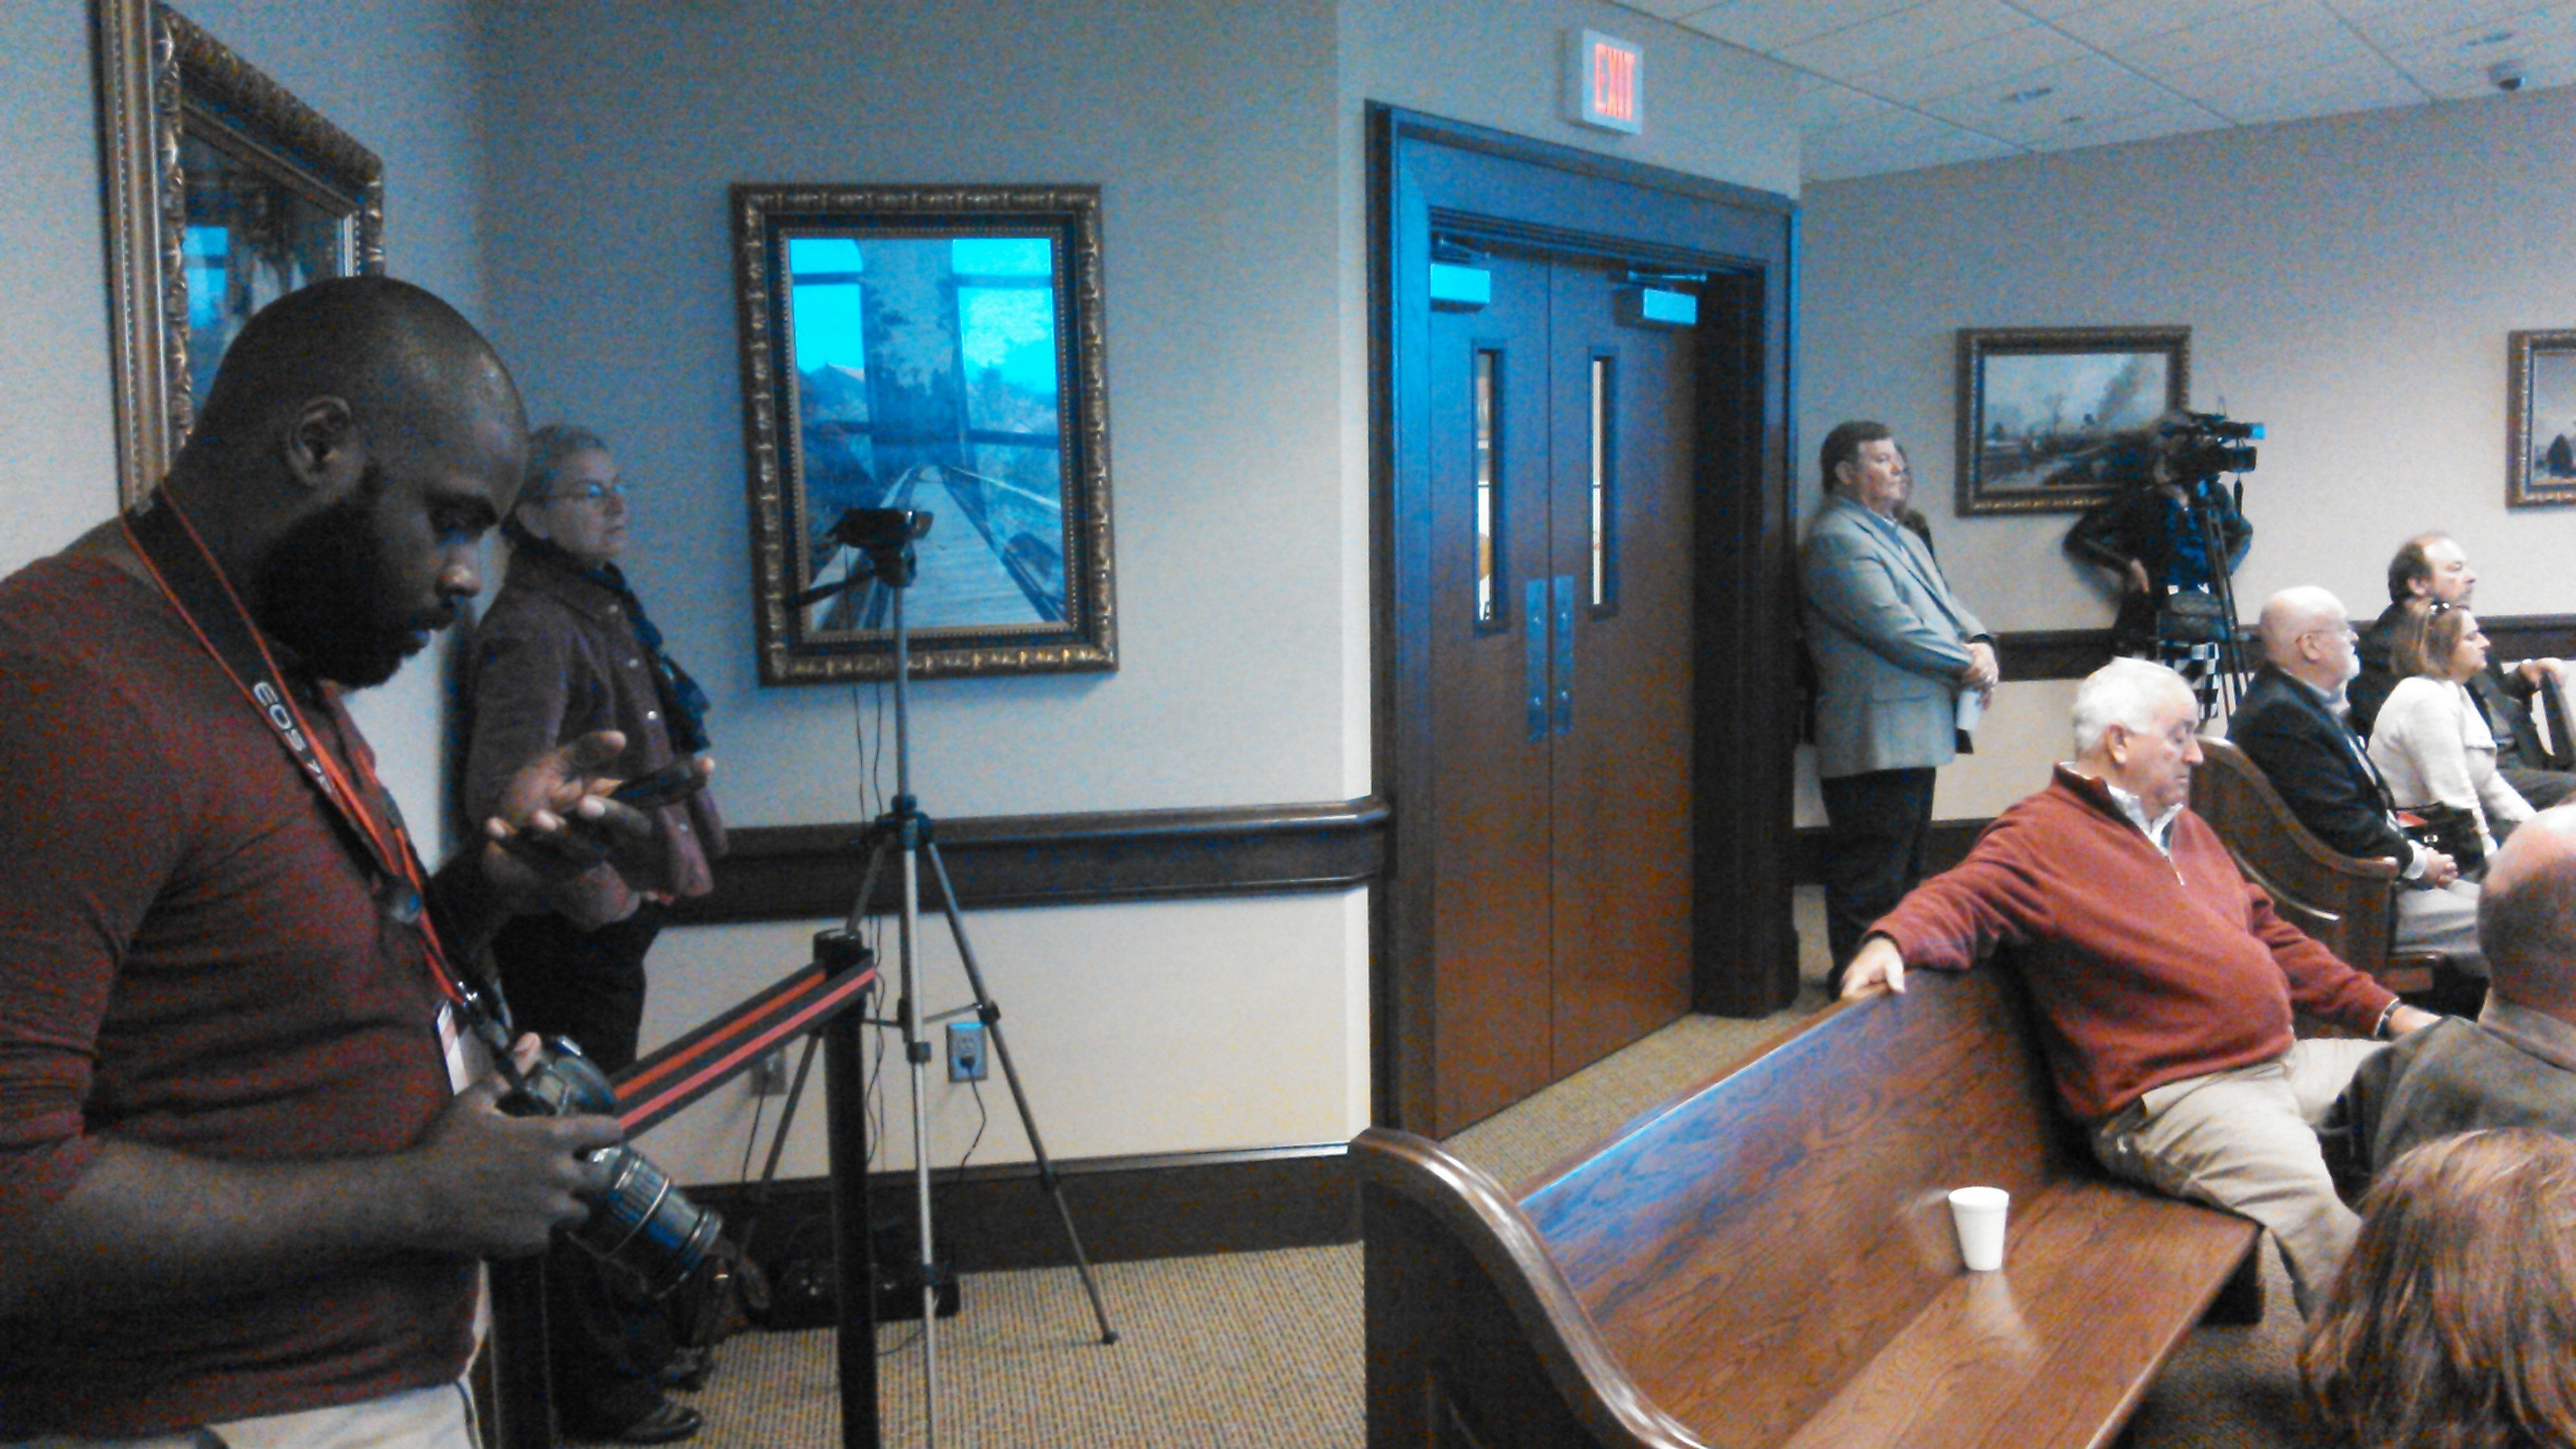 3264x1836 VDT videographer, Gretchen with the LAKE camer, Chairman Slaughter, County Clerk, in Open Government Symposium, by John S. Quarterman, 21 November 2014